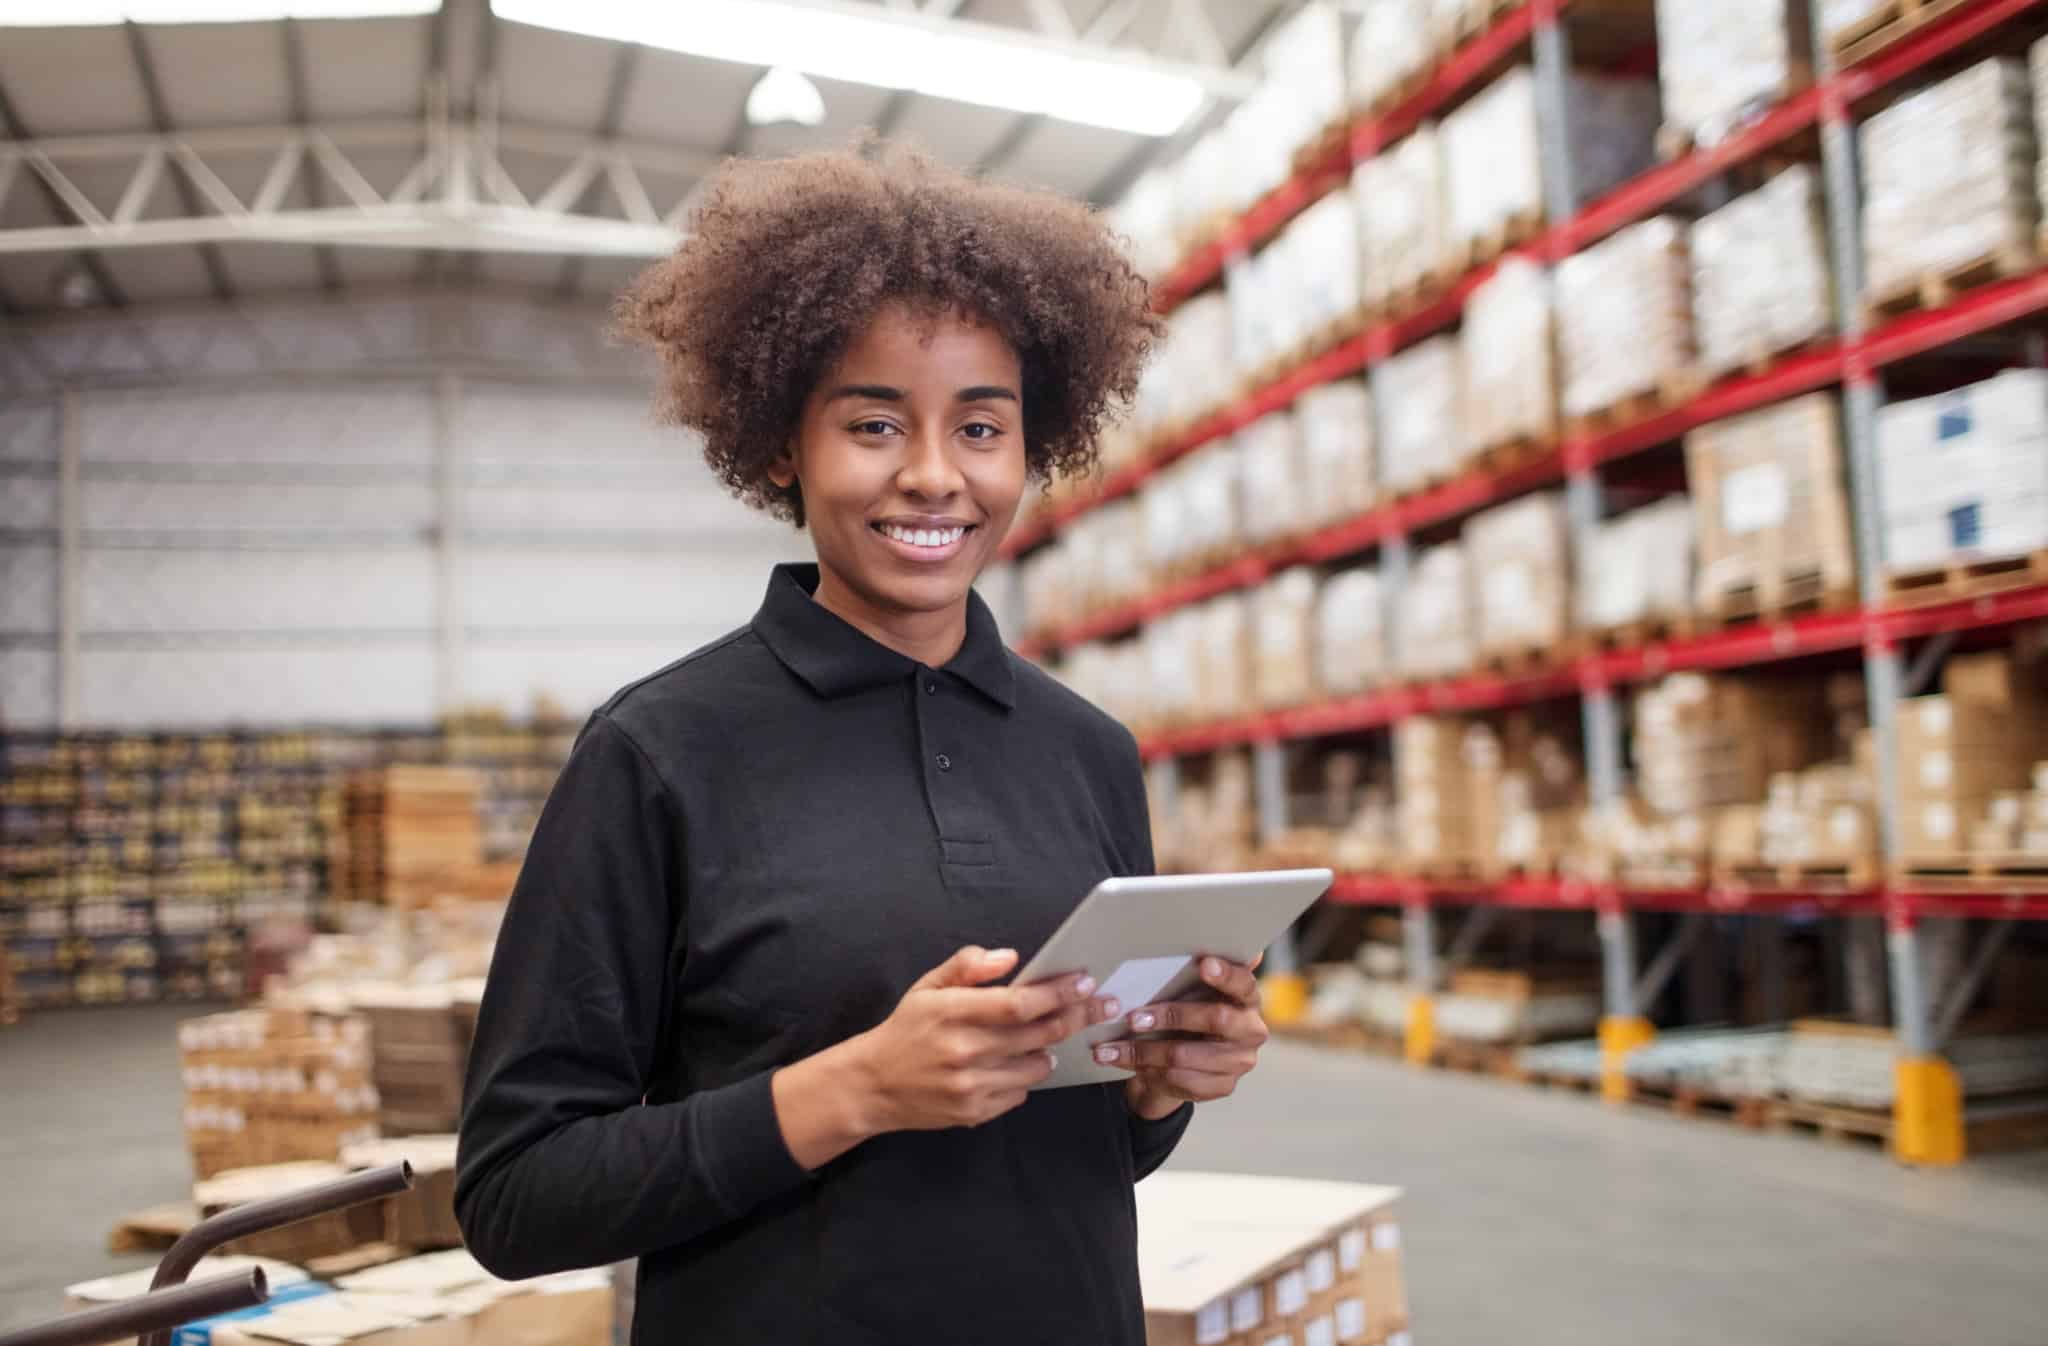 Female warehouse worker takes inventory on a tablet.